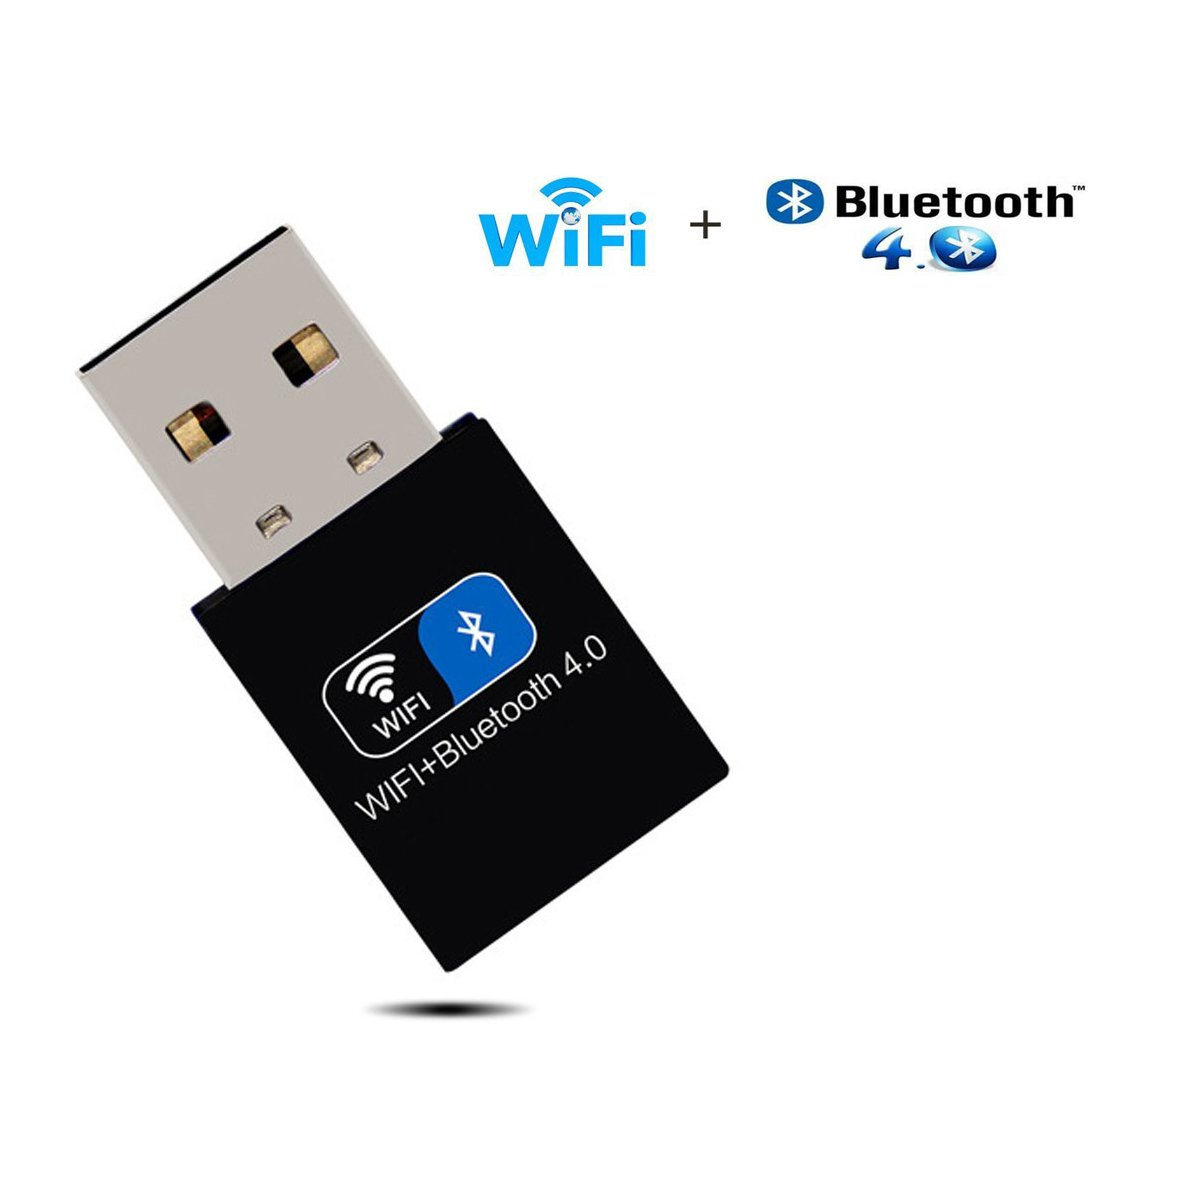 Wireless WiFi Bluetooth Adapter USB WiFi Dongle Network Adapter 150Mbps & Bluetooth Transmitter Receiver with External Antenna for Desktop/Laptop/PC, Supports Windows 7/8/8.1/10/XP/Vista by iFun4U